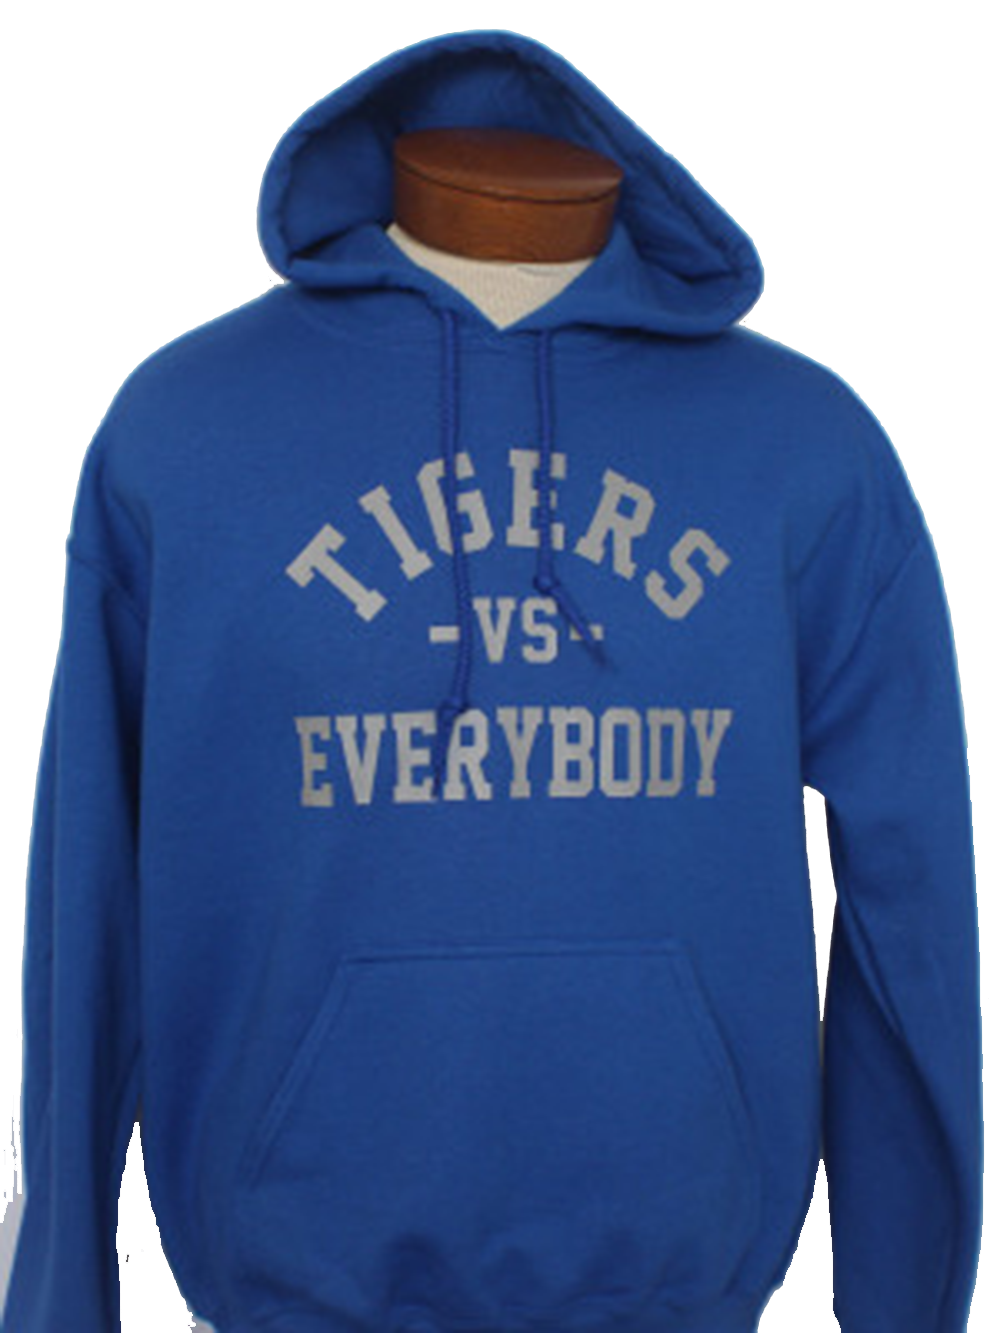 Tigers-Vs-Everybody-Hoodie blue